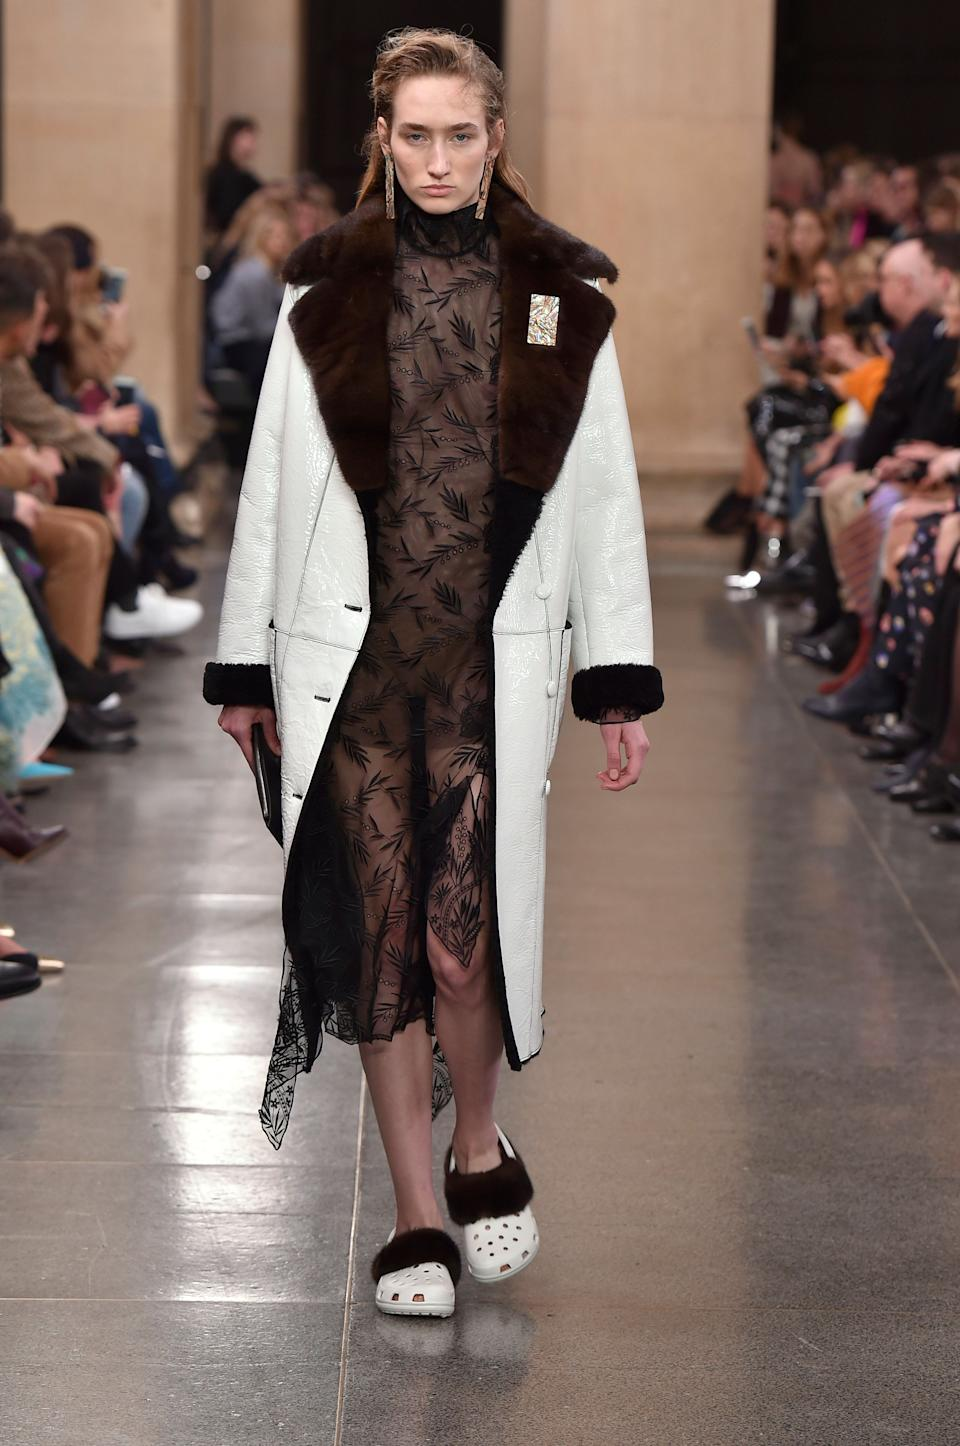 White, fur-covered crocs on at Christopher Kane on Feb. 20, 2017. (Photo: Catwalking via Getty Images)